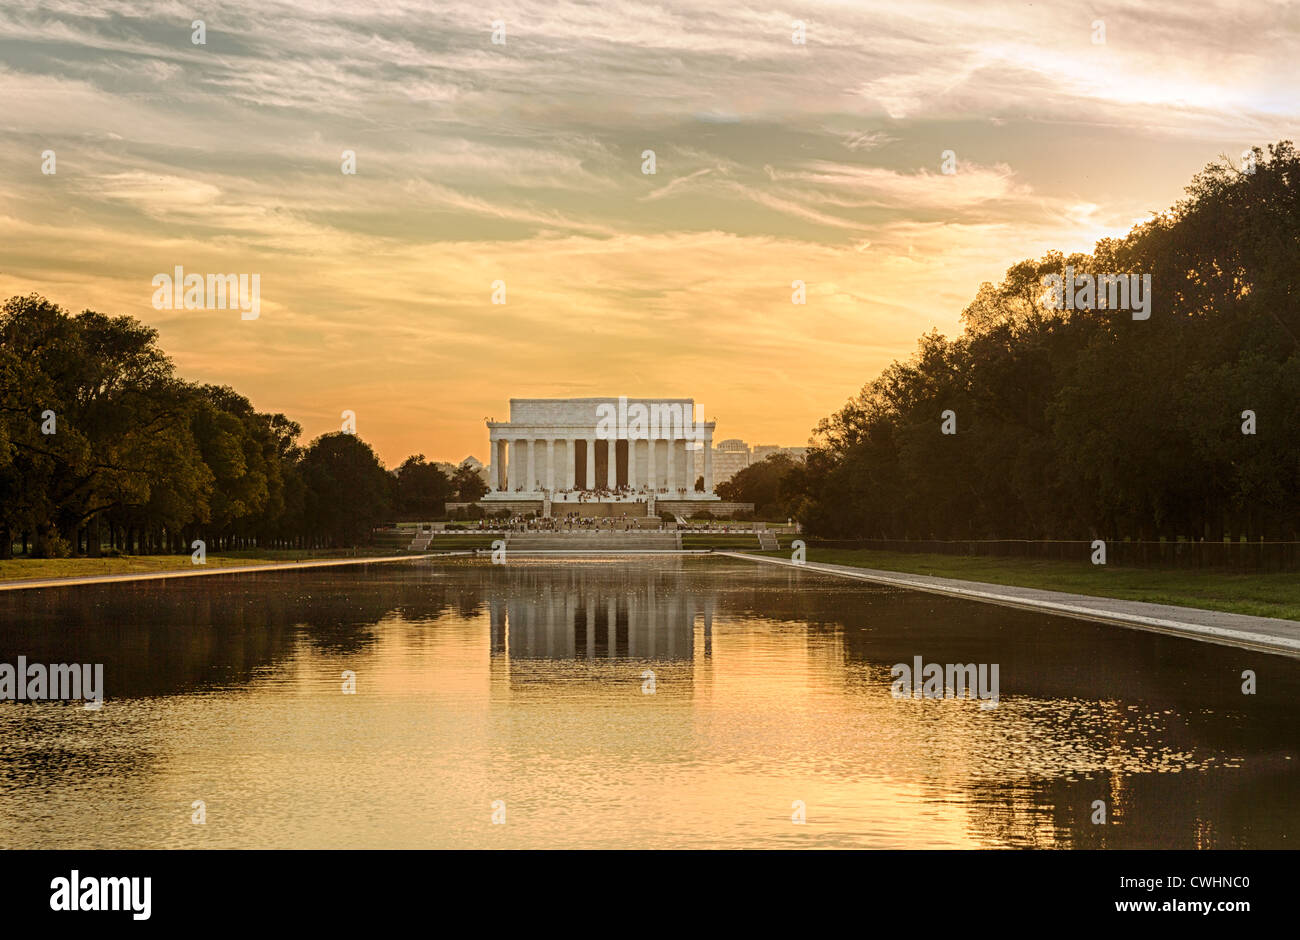 Setting sun illuminates Jefferson Memorial in Washington DC with reflections in new Reflecting Pool - Stock Image